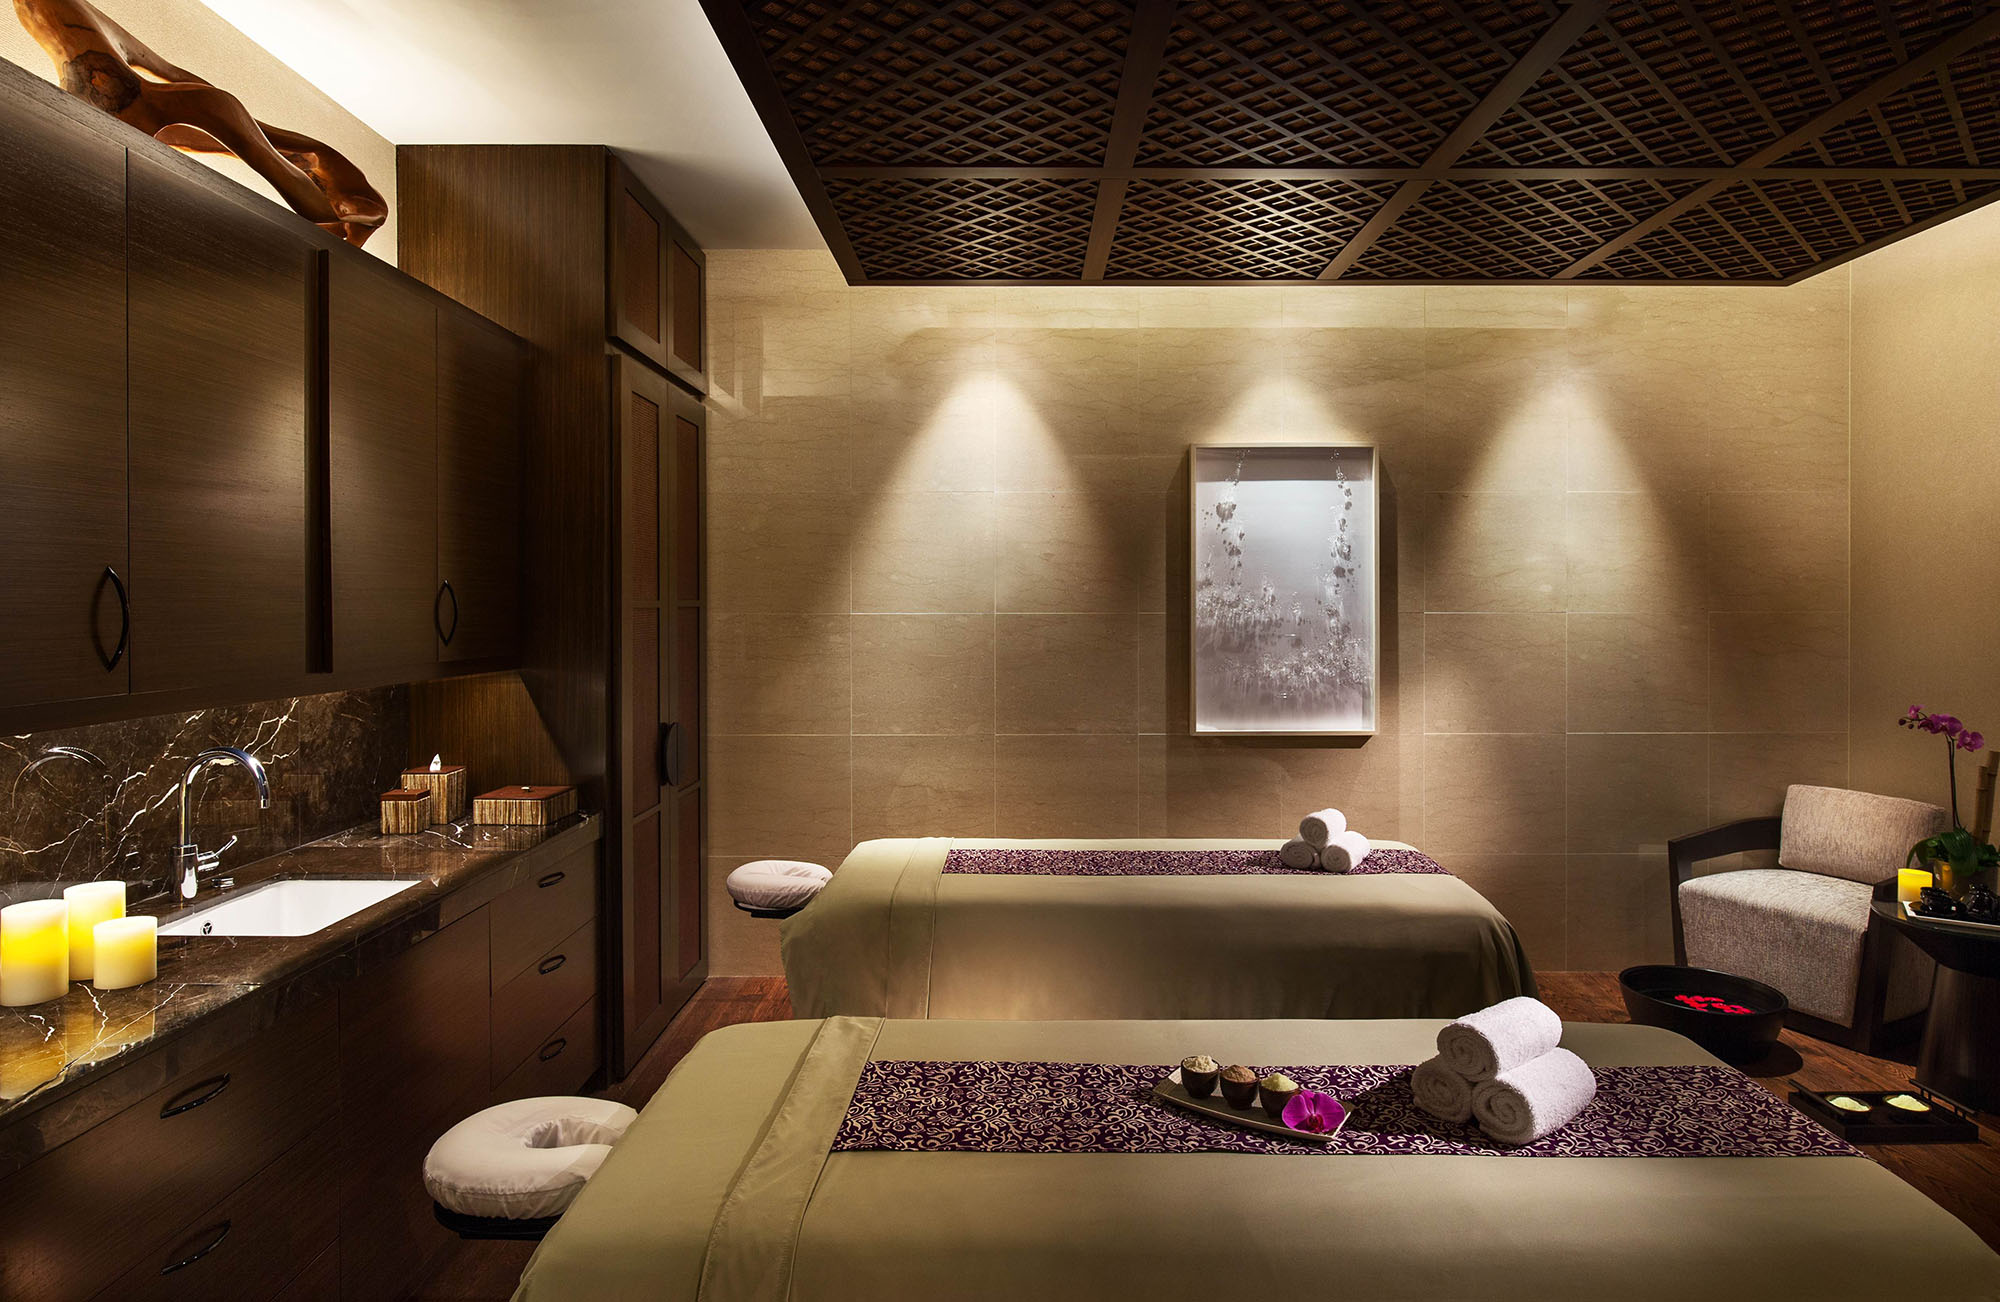 Best Relaxing Spas for Couples in Jakarta - Indoindians